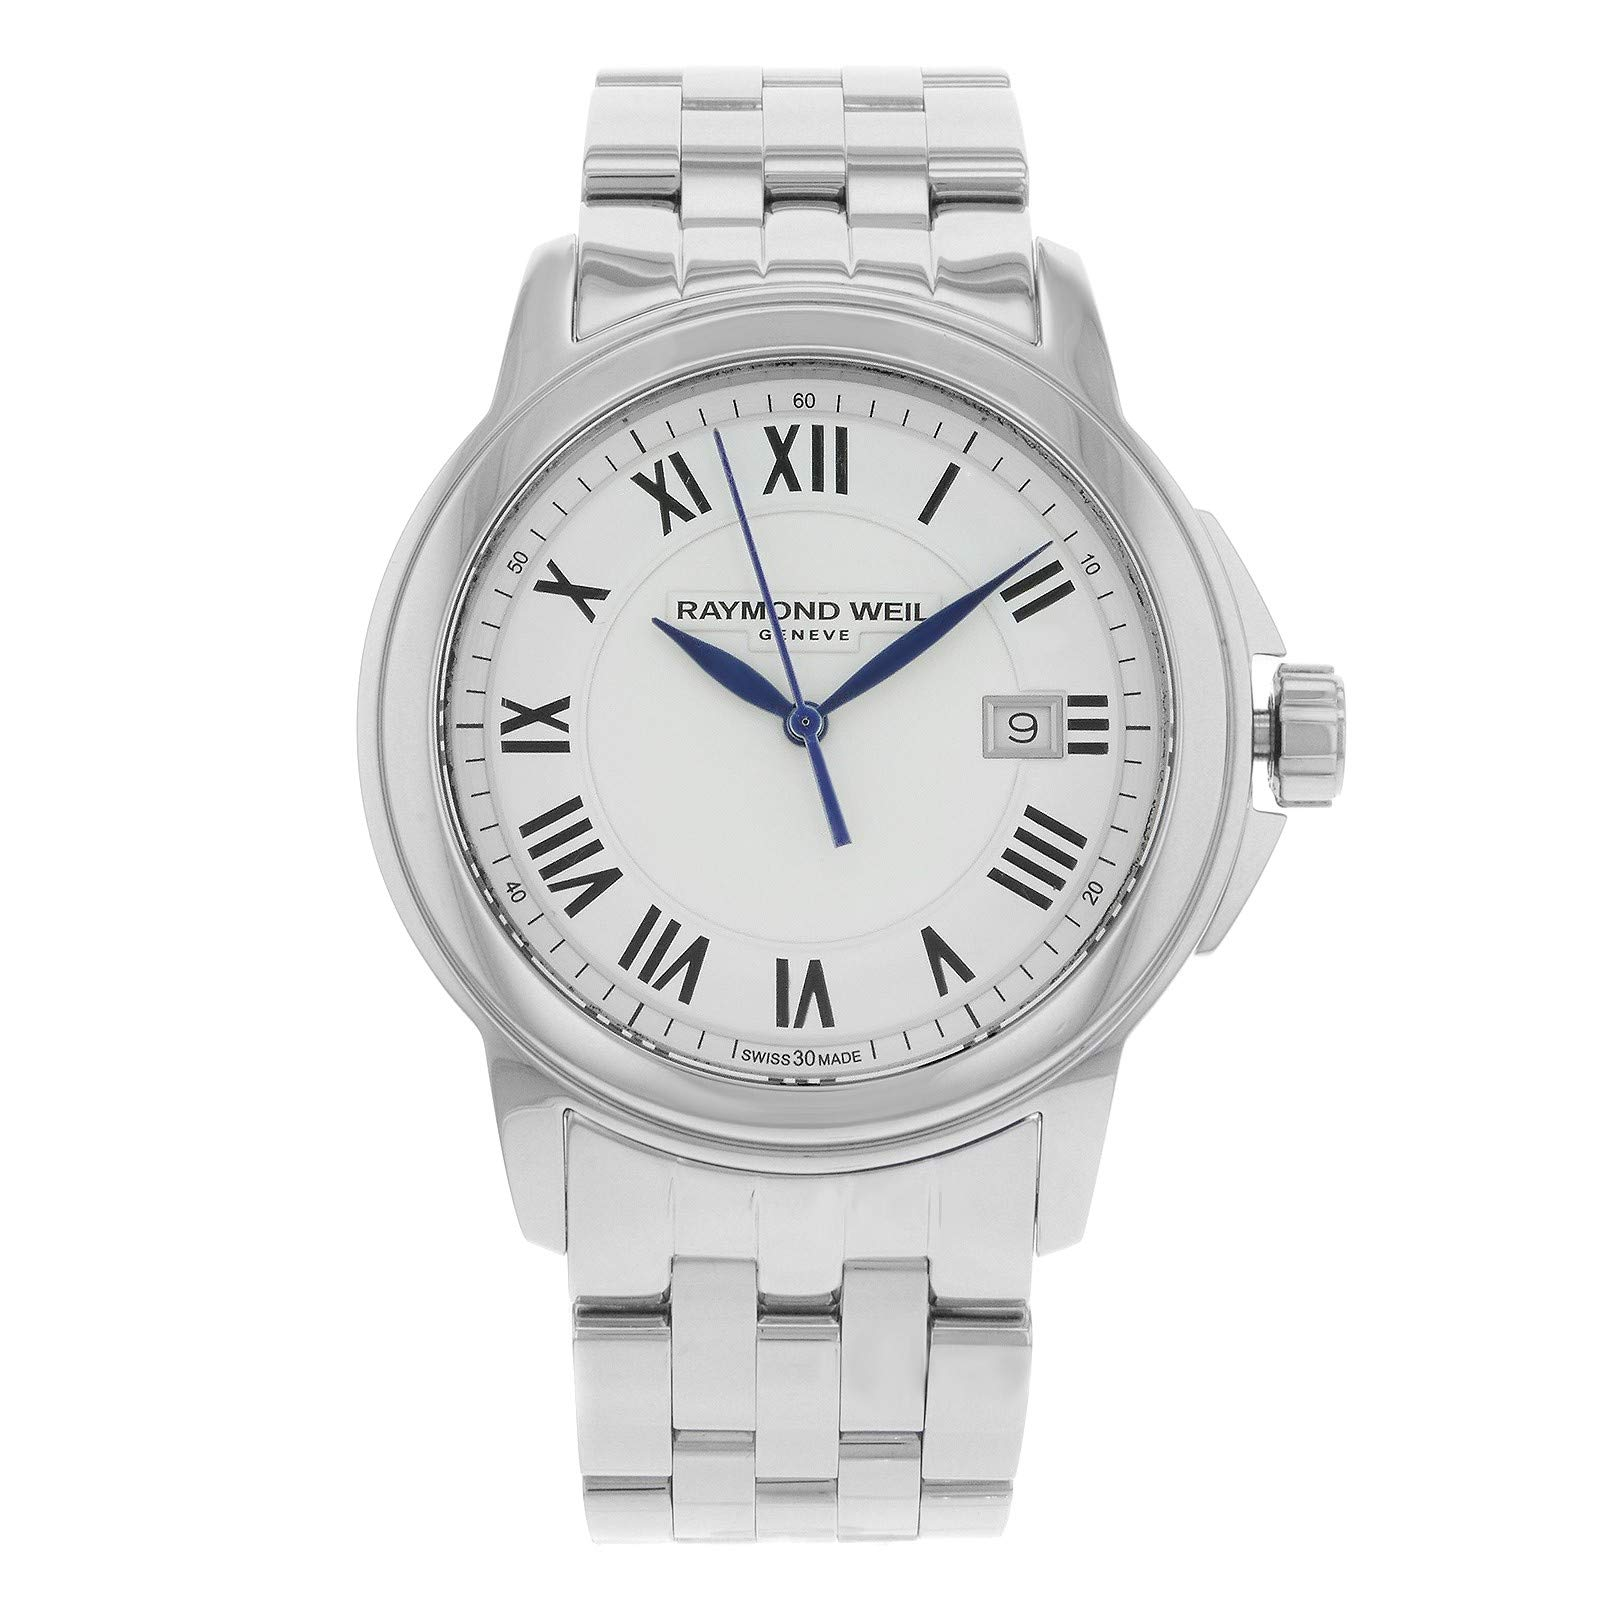 Raymond Weil Tradition Automatic-self-Wind Male Watch 5578-ST-00300 (Certified Pre-Owned) by RAYMOND WEIL